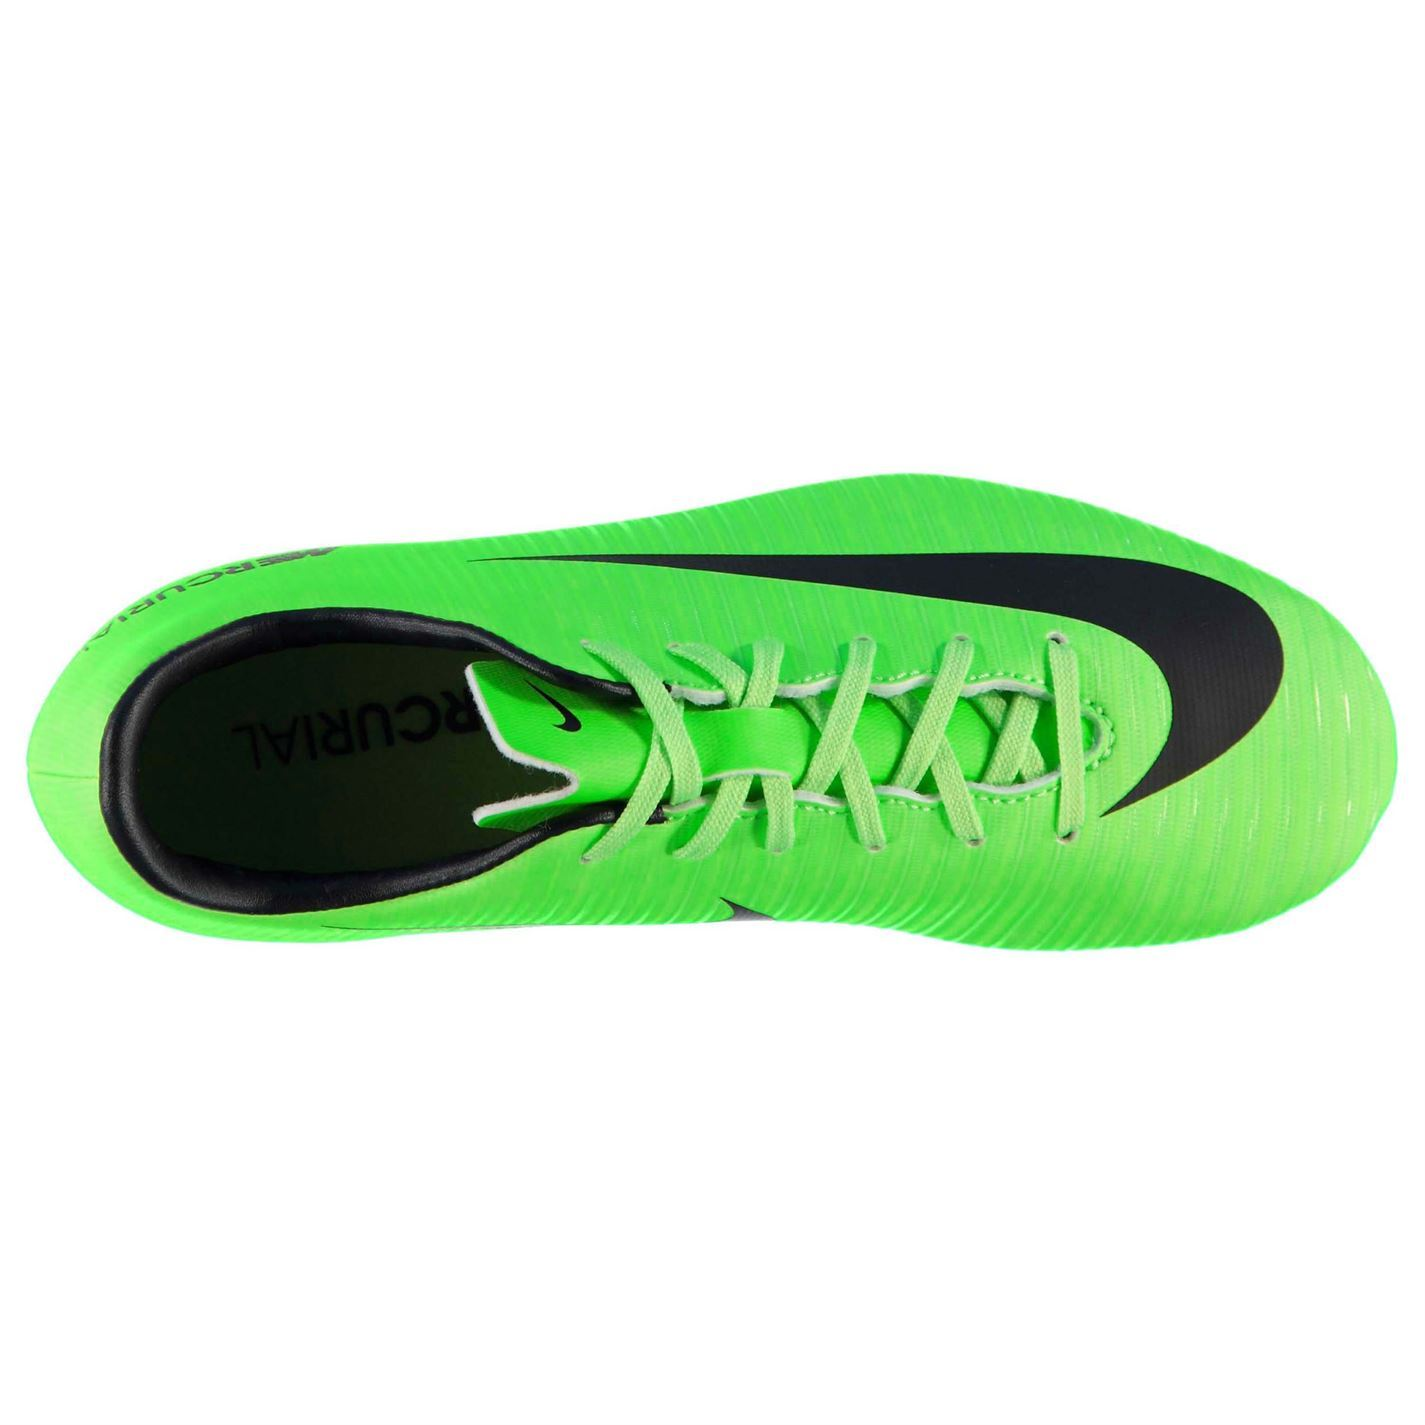 fdf0e2dda99 ... Nike Mercurial Vapor Firm Ground Football Boots Juniors Green Black  Soccer Shoes